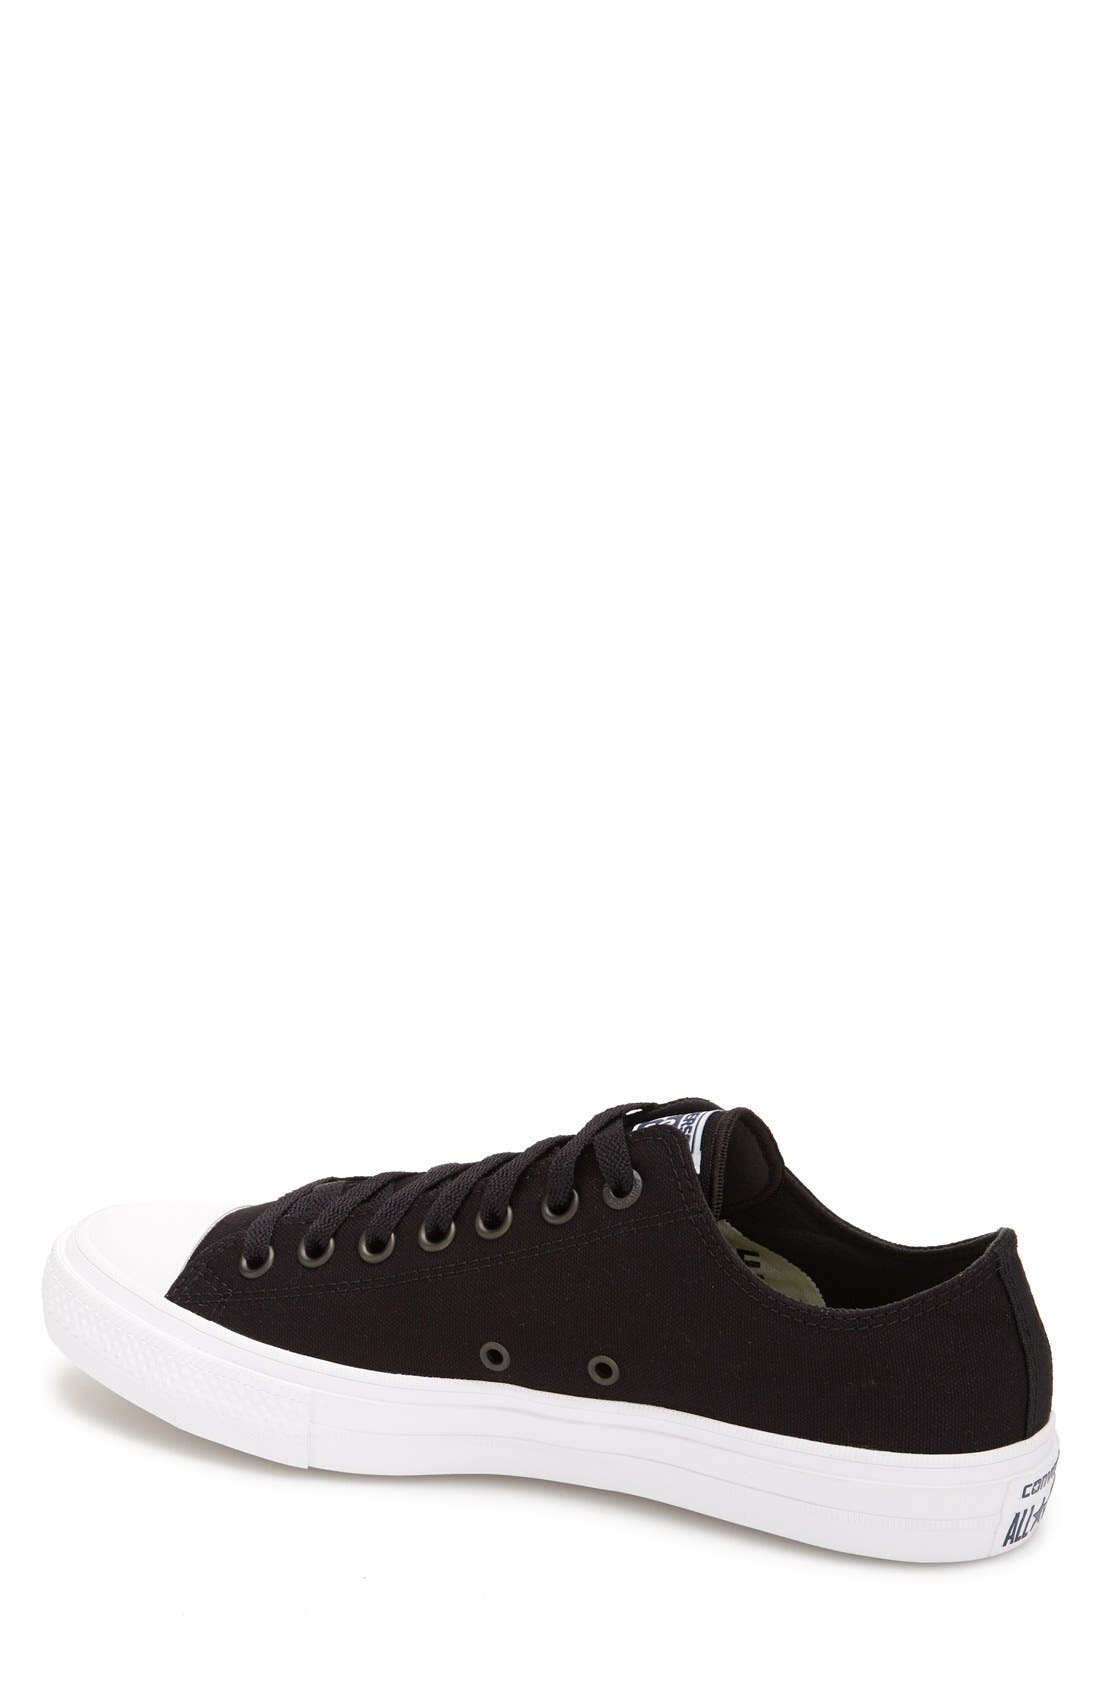 CONVERSE, Chuck Taylor<sup>®</sup> All Star<sup>®</sup> II 'Ox' Canvas Sneaker, Alternate thumbnail 2, color, 001